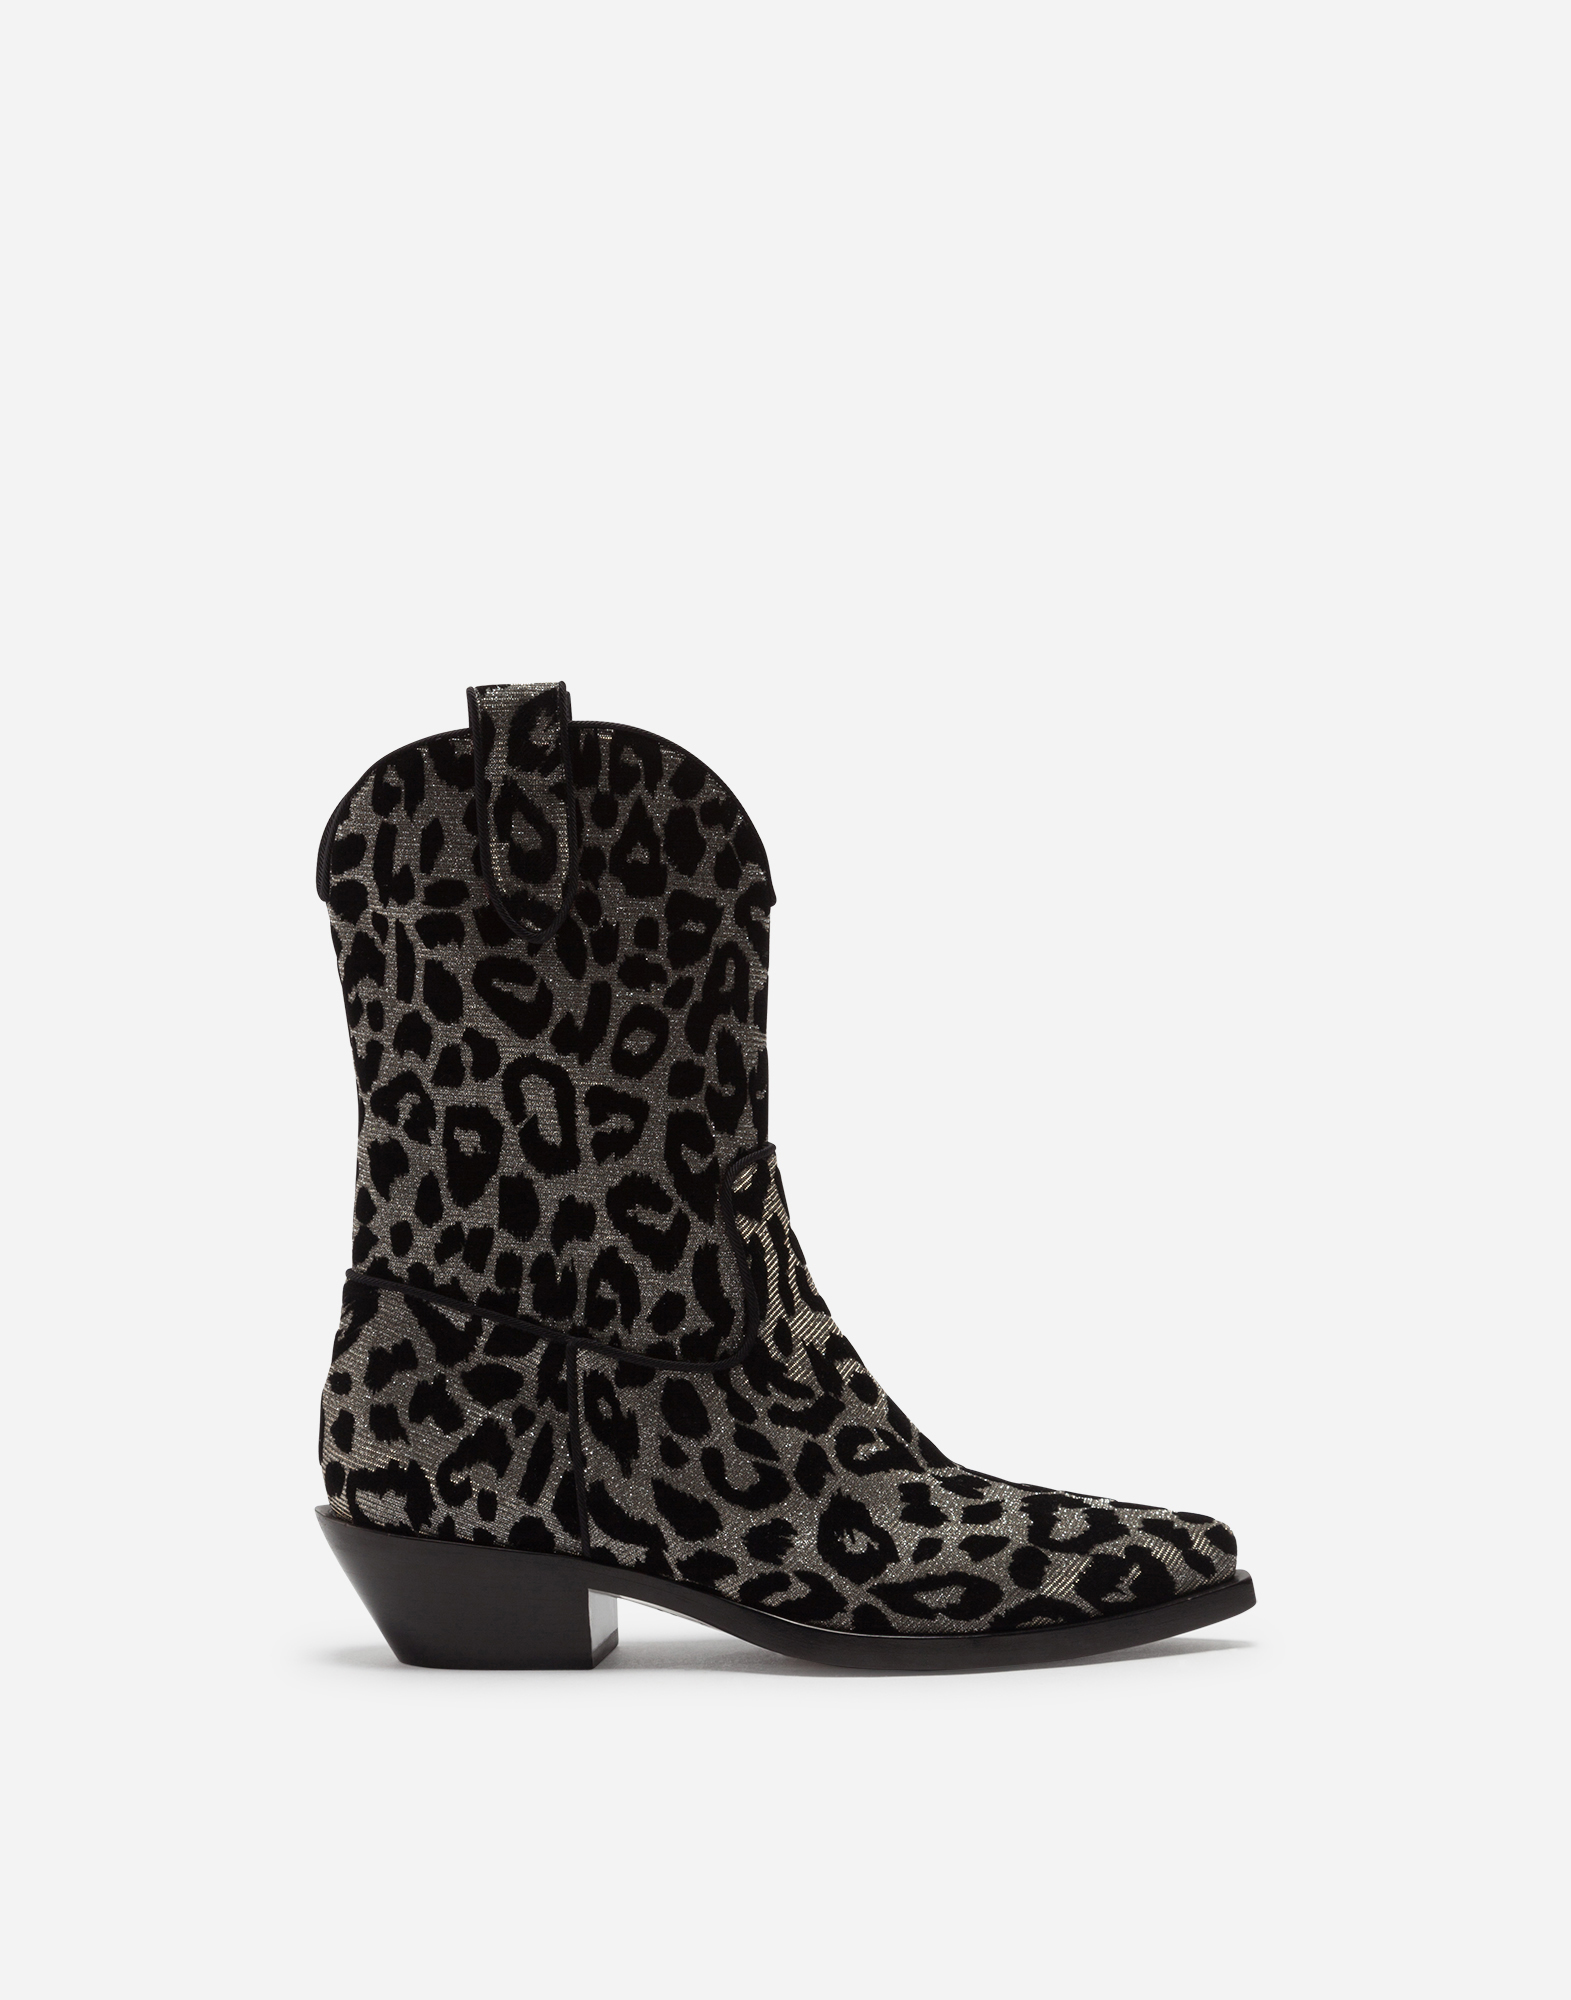 Dolce & Gabbana GAUCHO BOOTS IN COLOR-CHANGING LEOPARD FABRIC